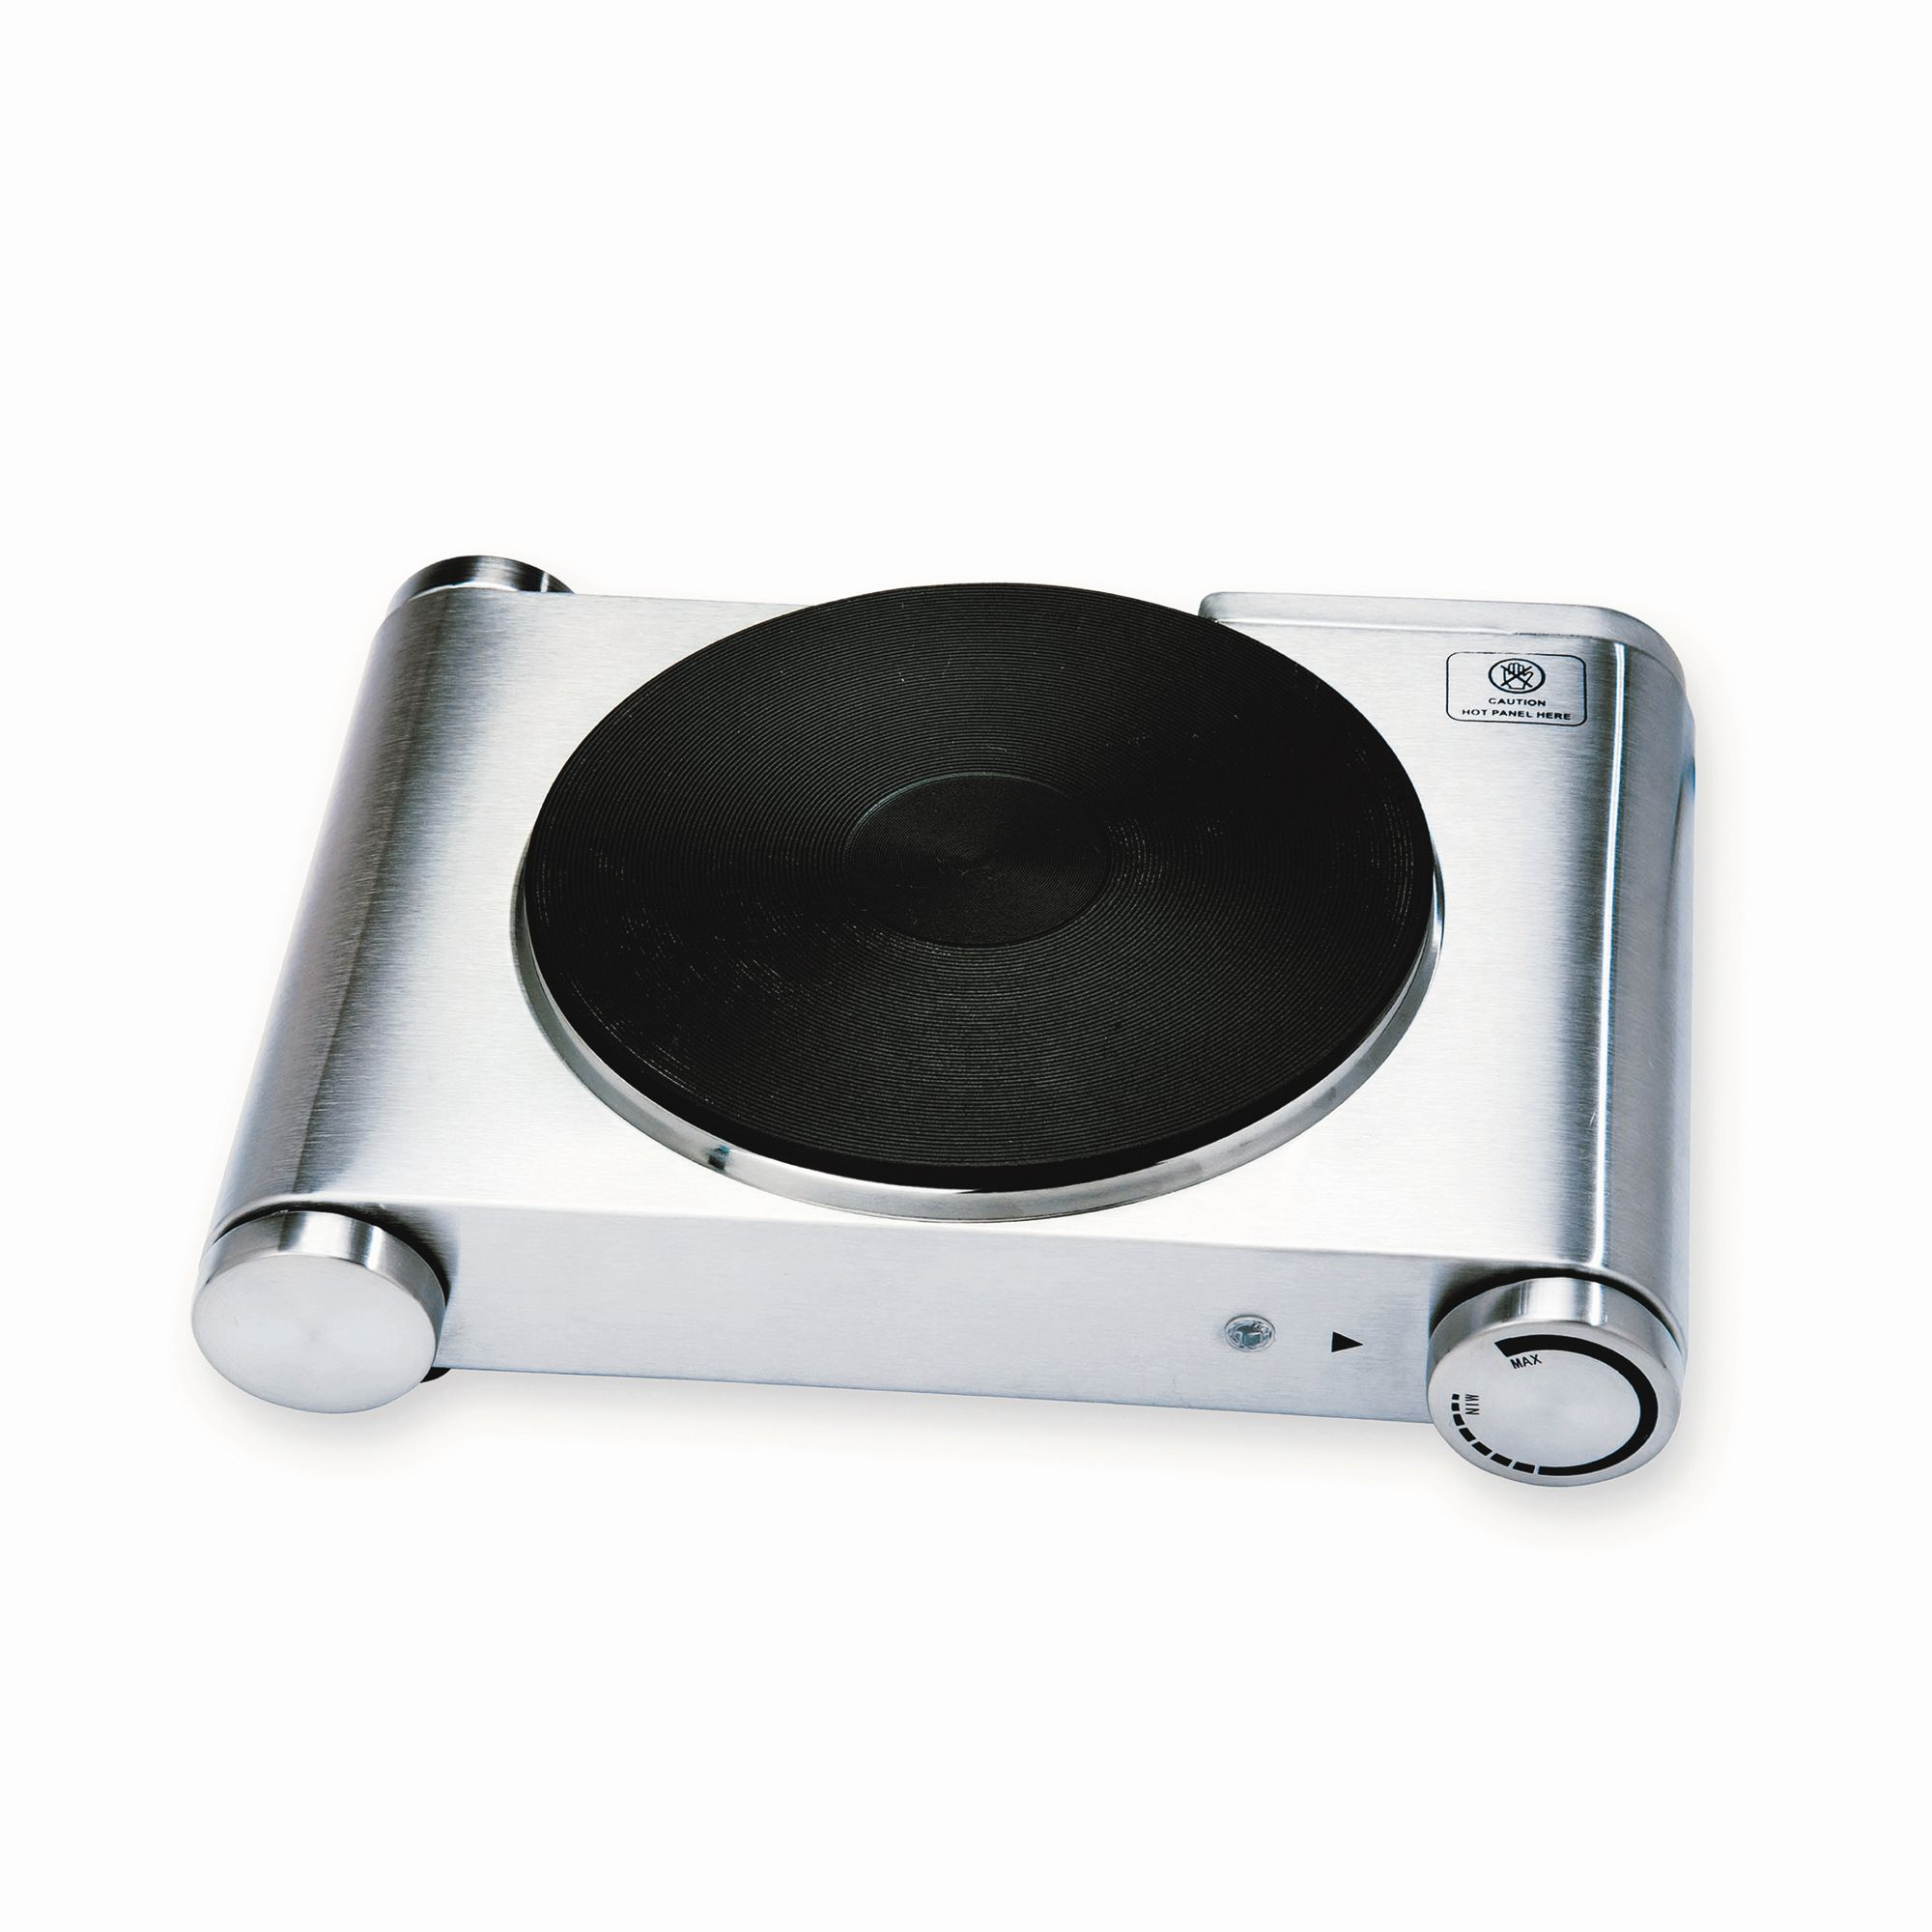 Kung Fu Single Burner Hot Plate / Flat Burner